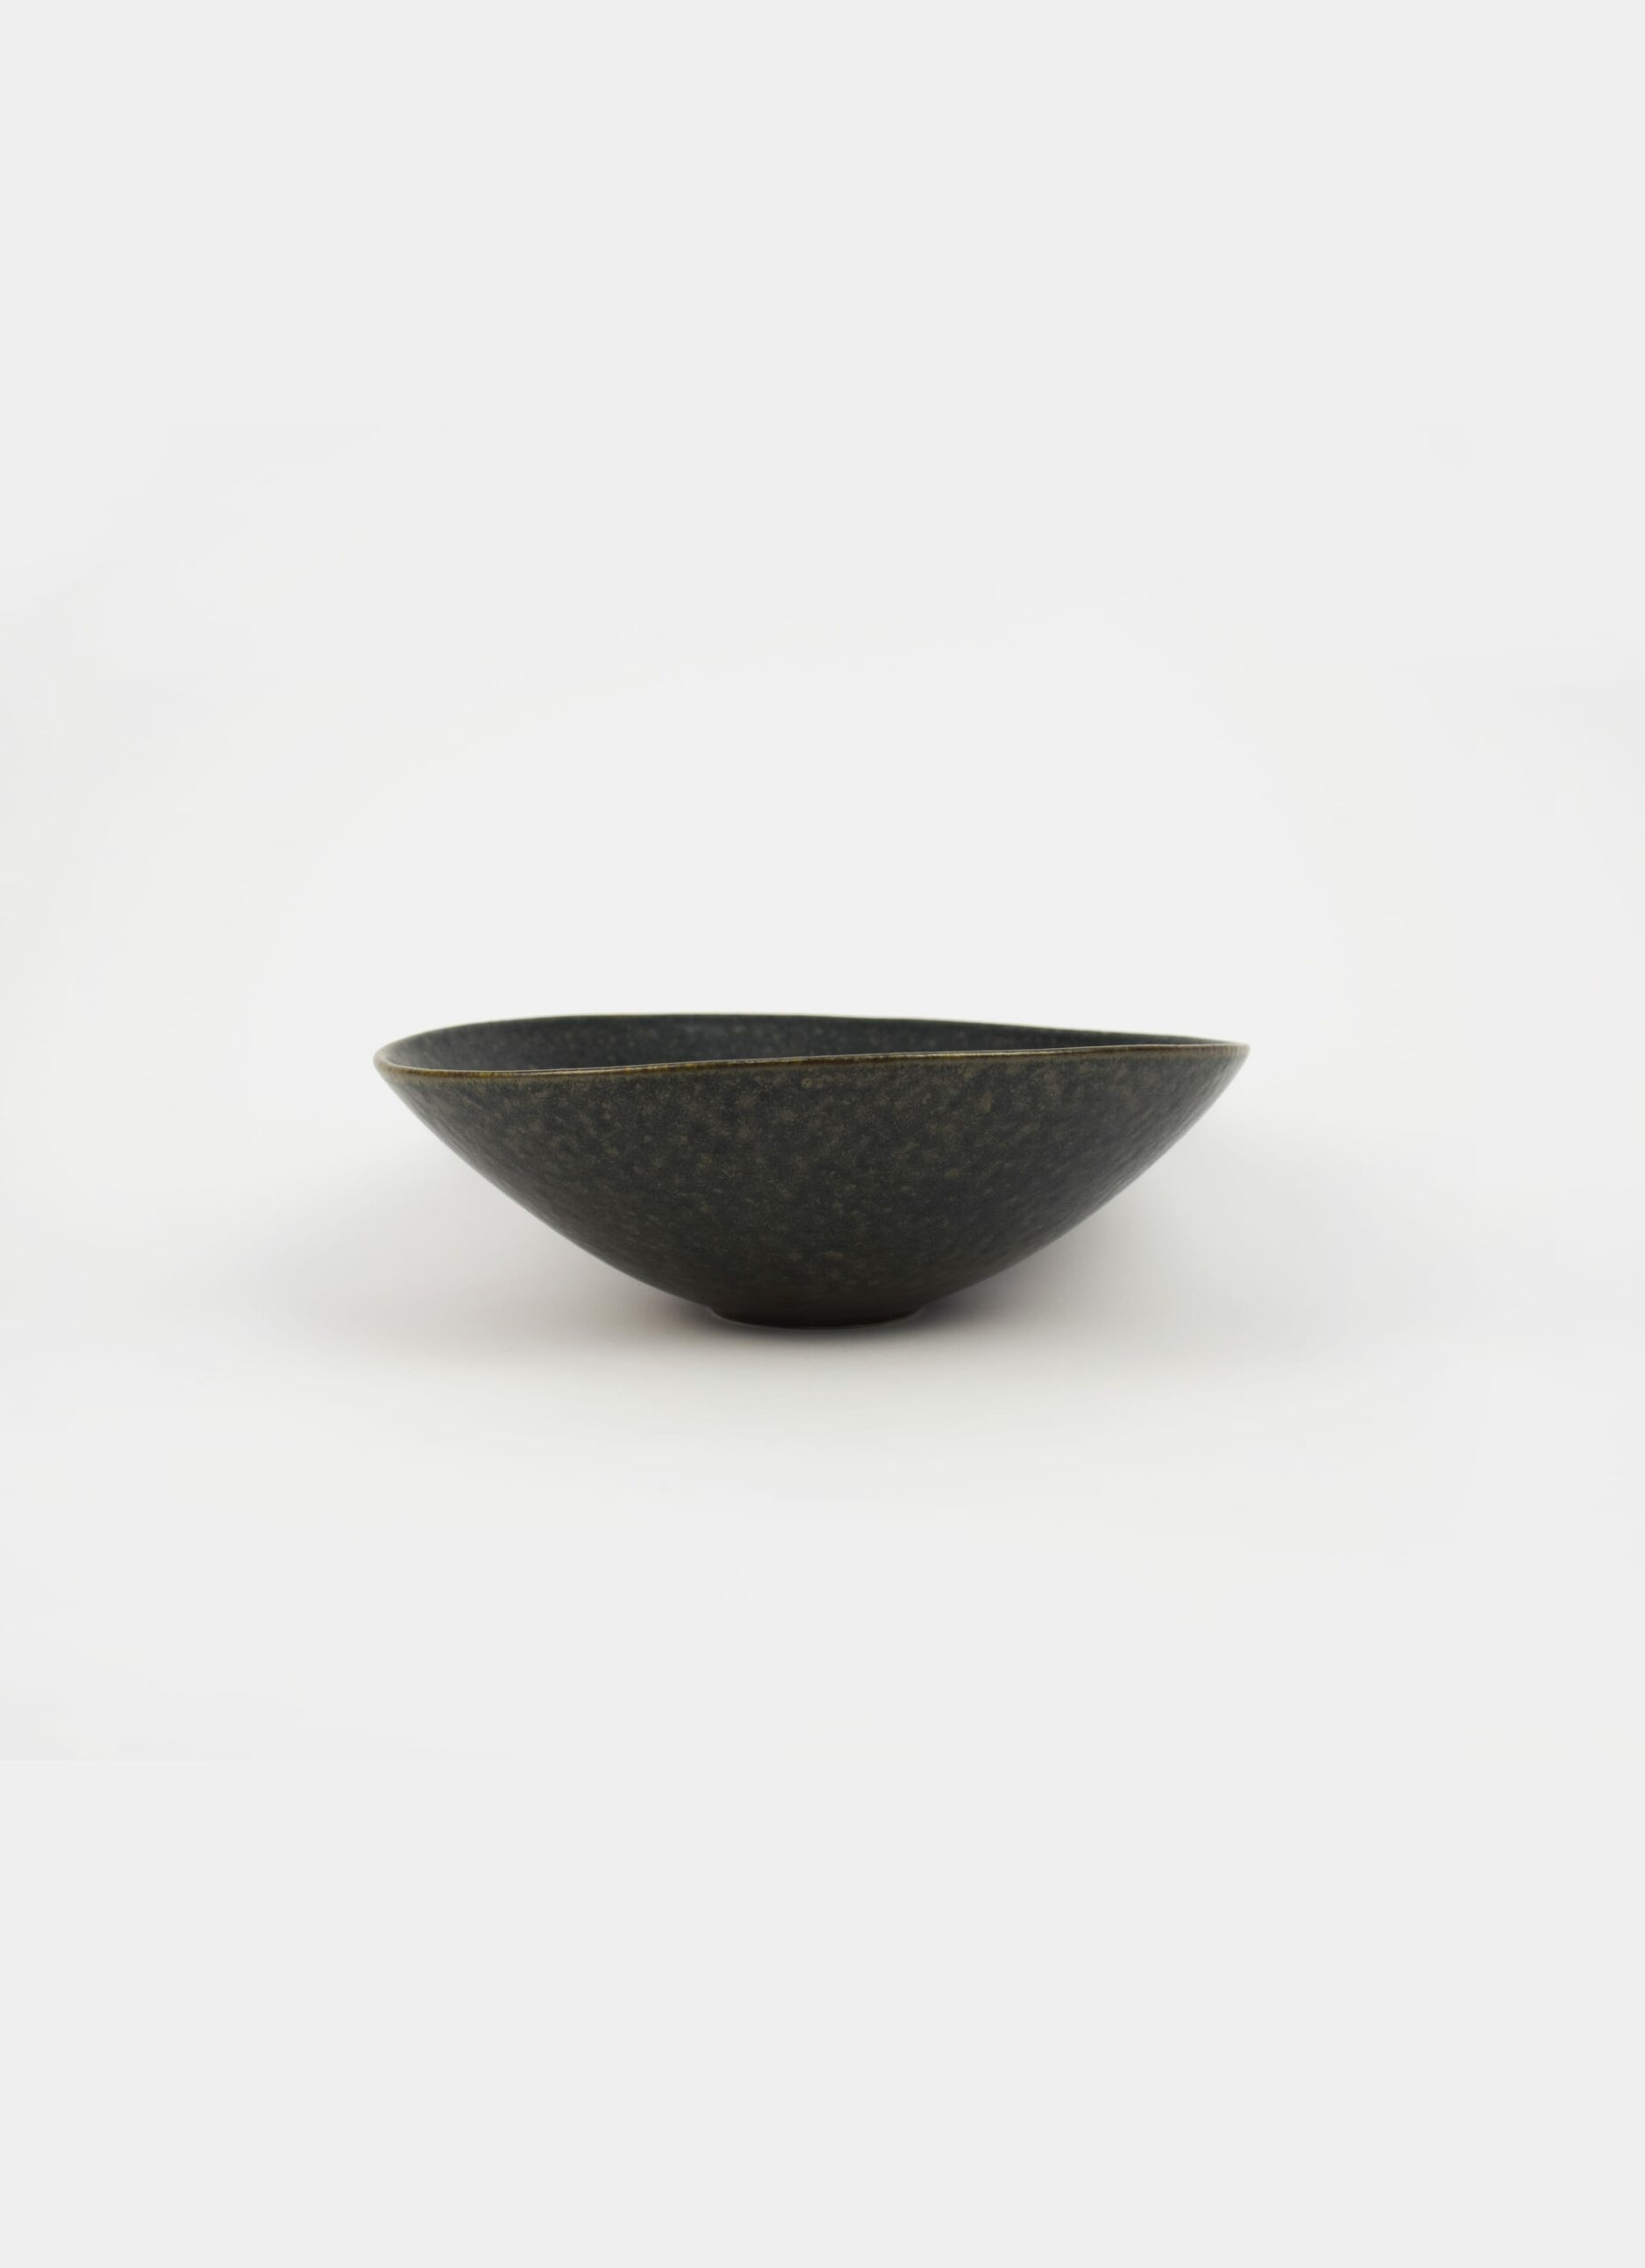 Tell me more - Salad Bowl - Stoneware - Small